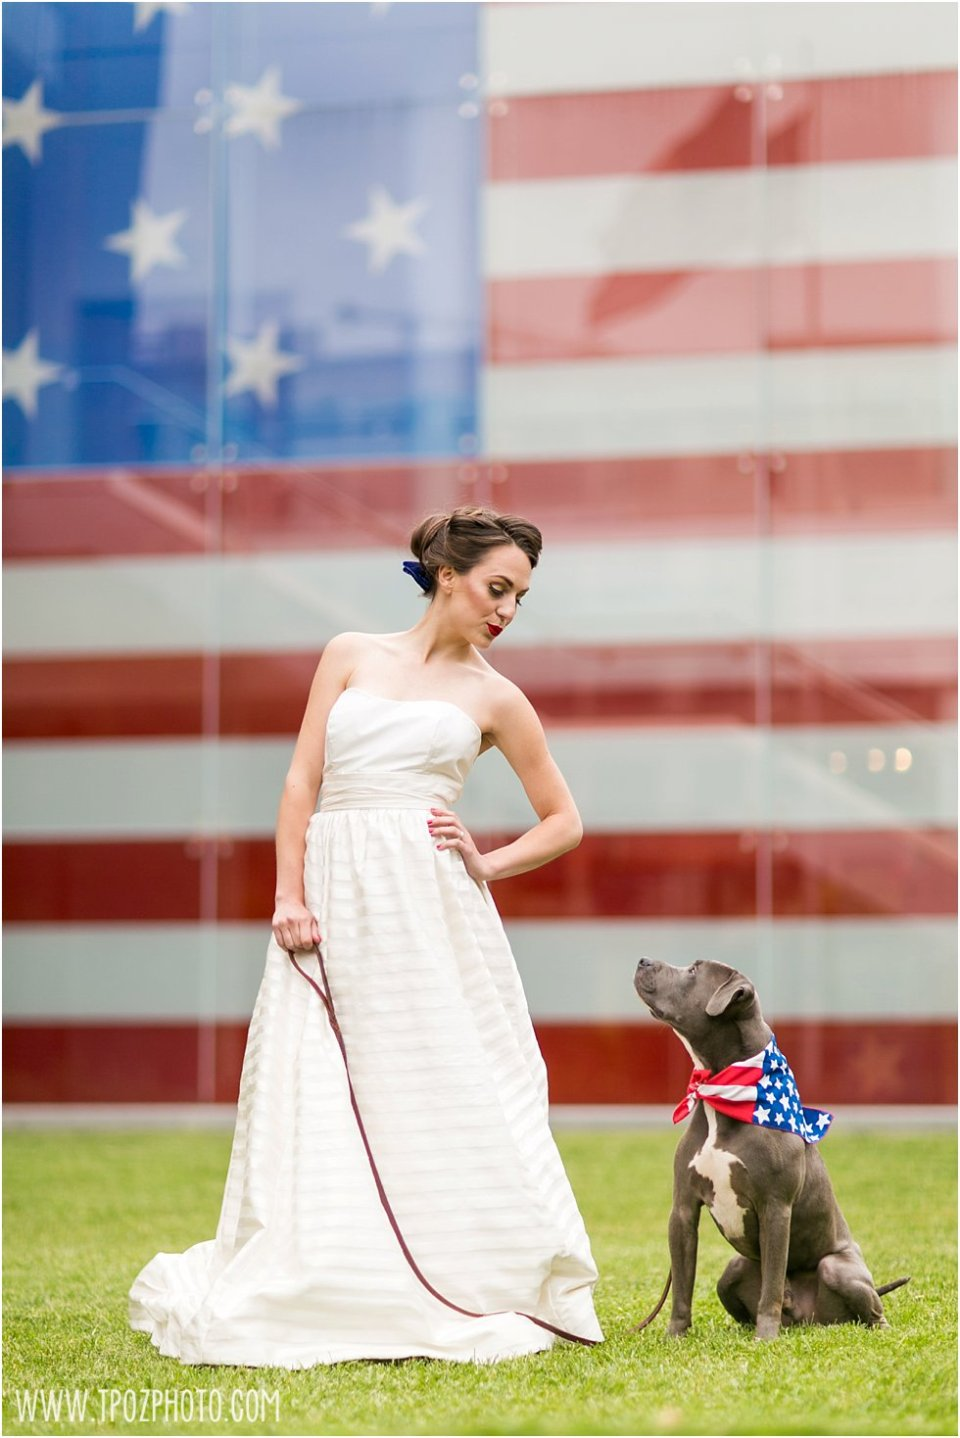 Star Spangled Banner Flag House wedding inspiration •  tPoz Photography • www.tpozphoto.com